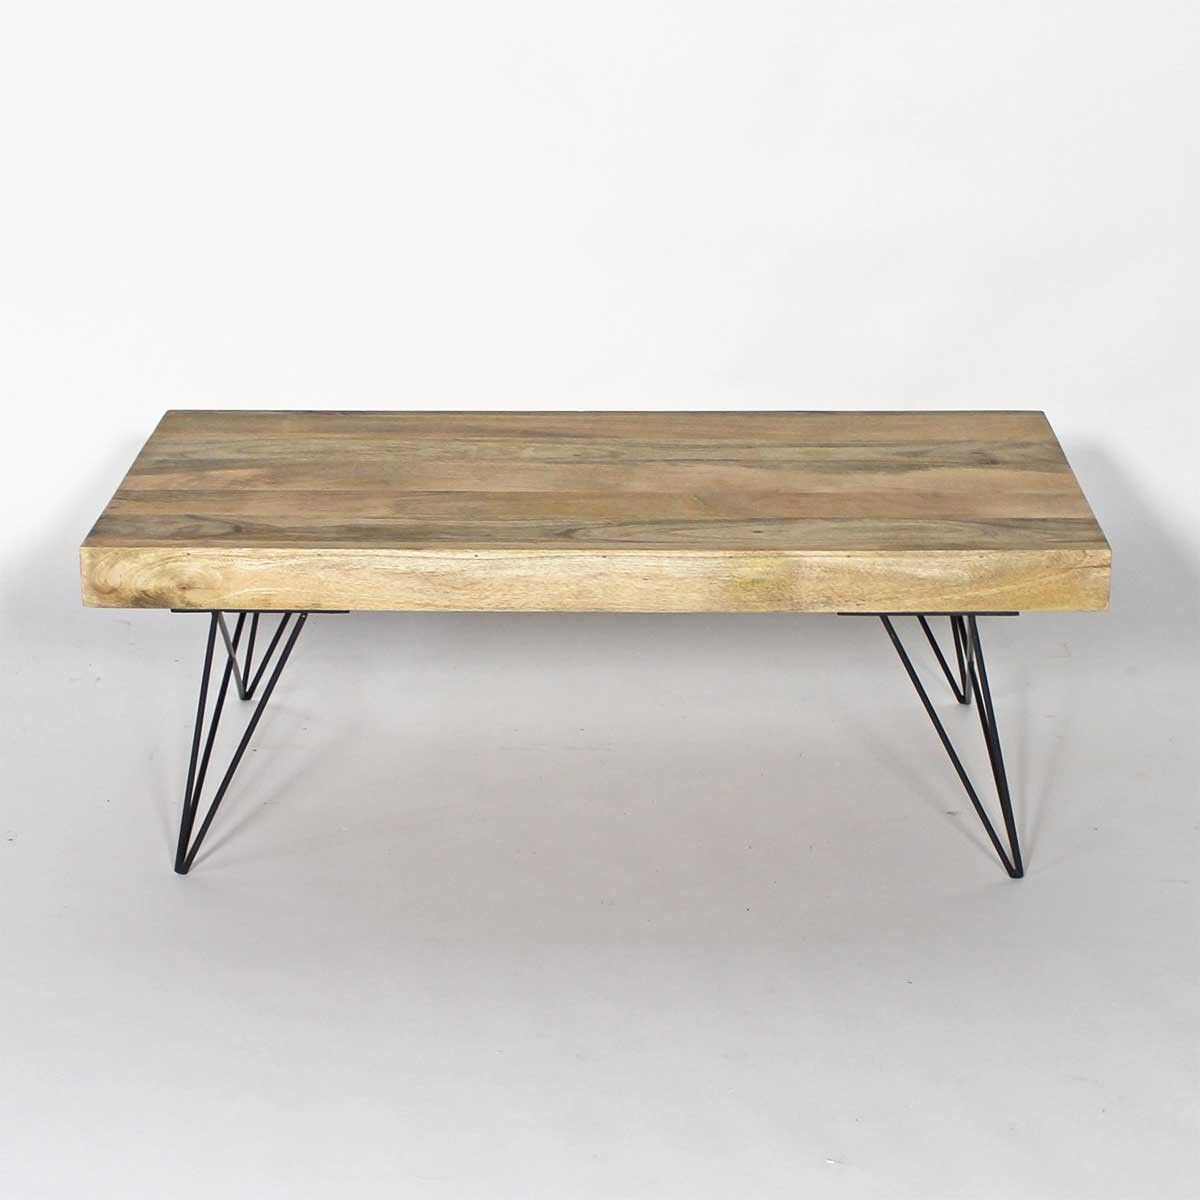 Basse Industrielle Basse Table Table Scandinave RectangulaireBois Industrielle Scandinave Basse Table RectangulaireBois UqMpzLVGS